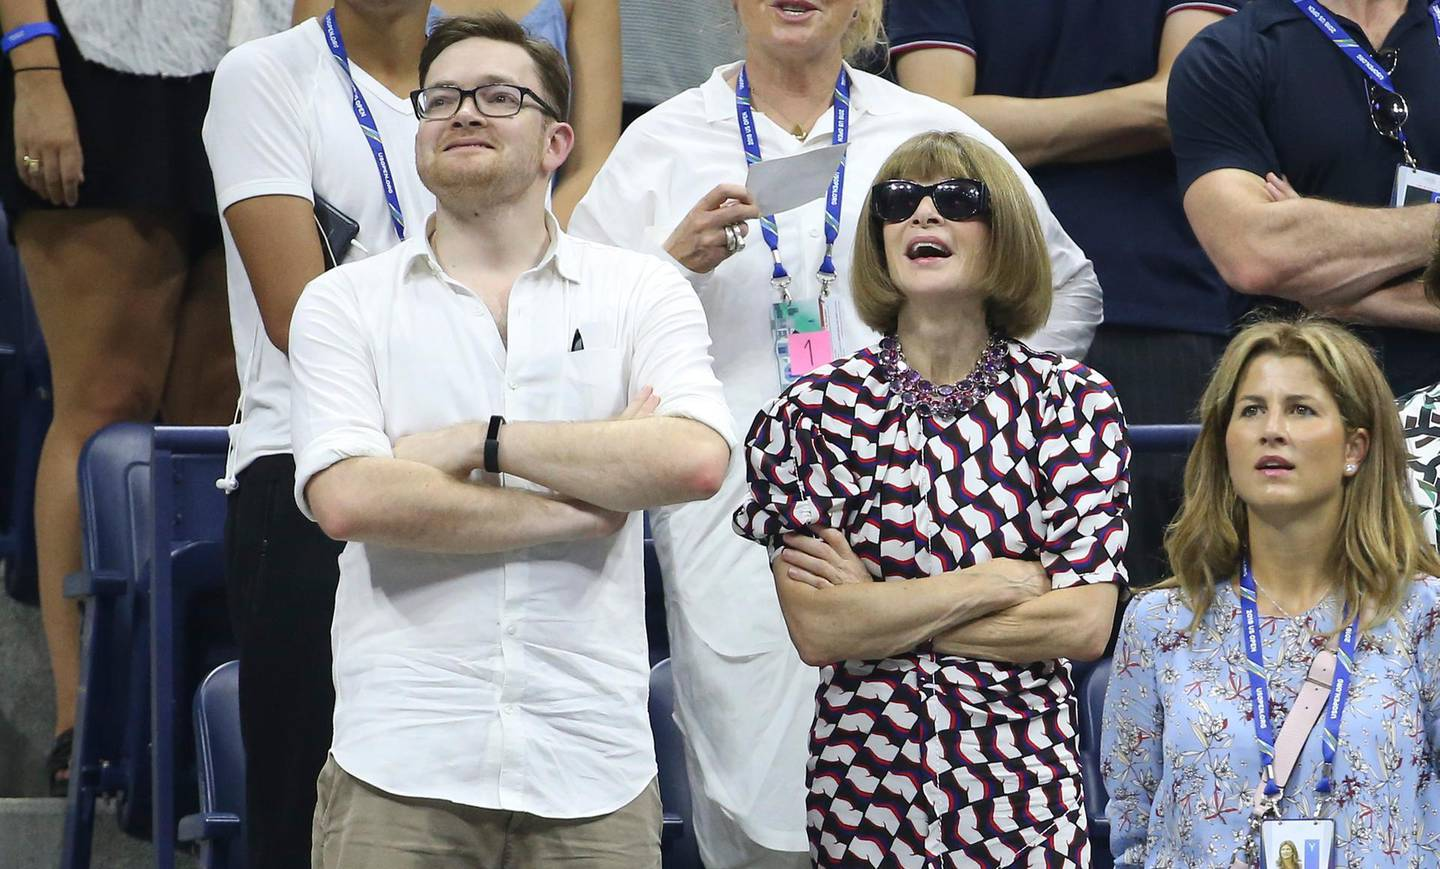 NEW YORK, NY - AUGUST 28: Anna Wintour and her son Charles Shaffer attend Roger Federer's match in his box during day 2 of the 2018 tennis US Open at Arthur Ashe stadium of the USTA Billie Jean King National Tennis Center on August 28, 2018 in Flushing Meadows, Queens, New York City. (Photo by Jean Catuffe/GC Images)